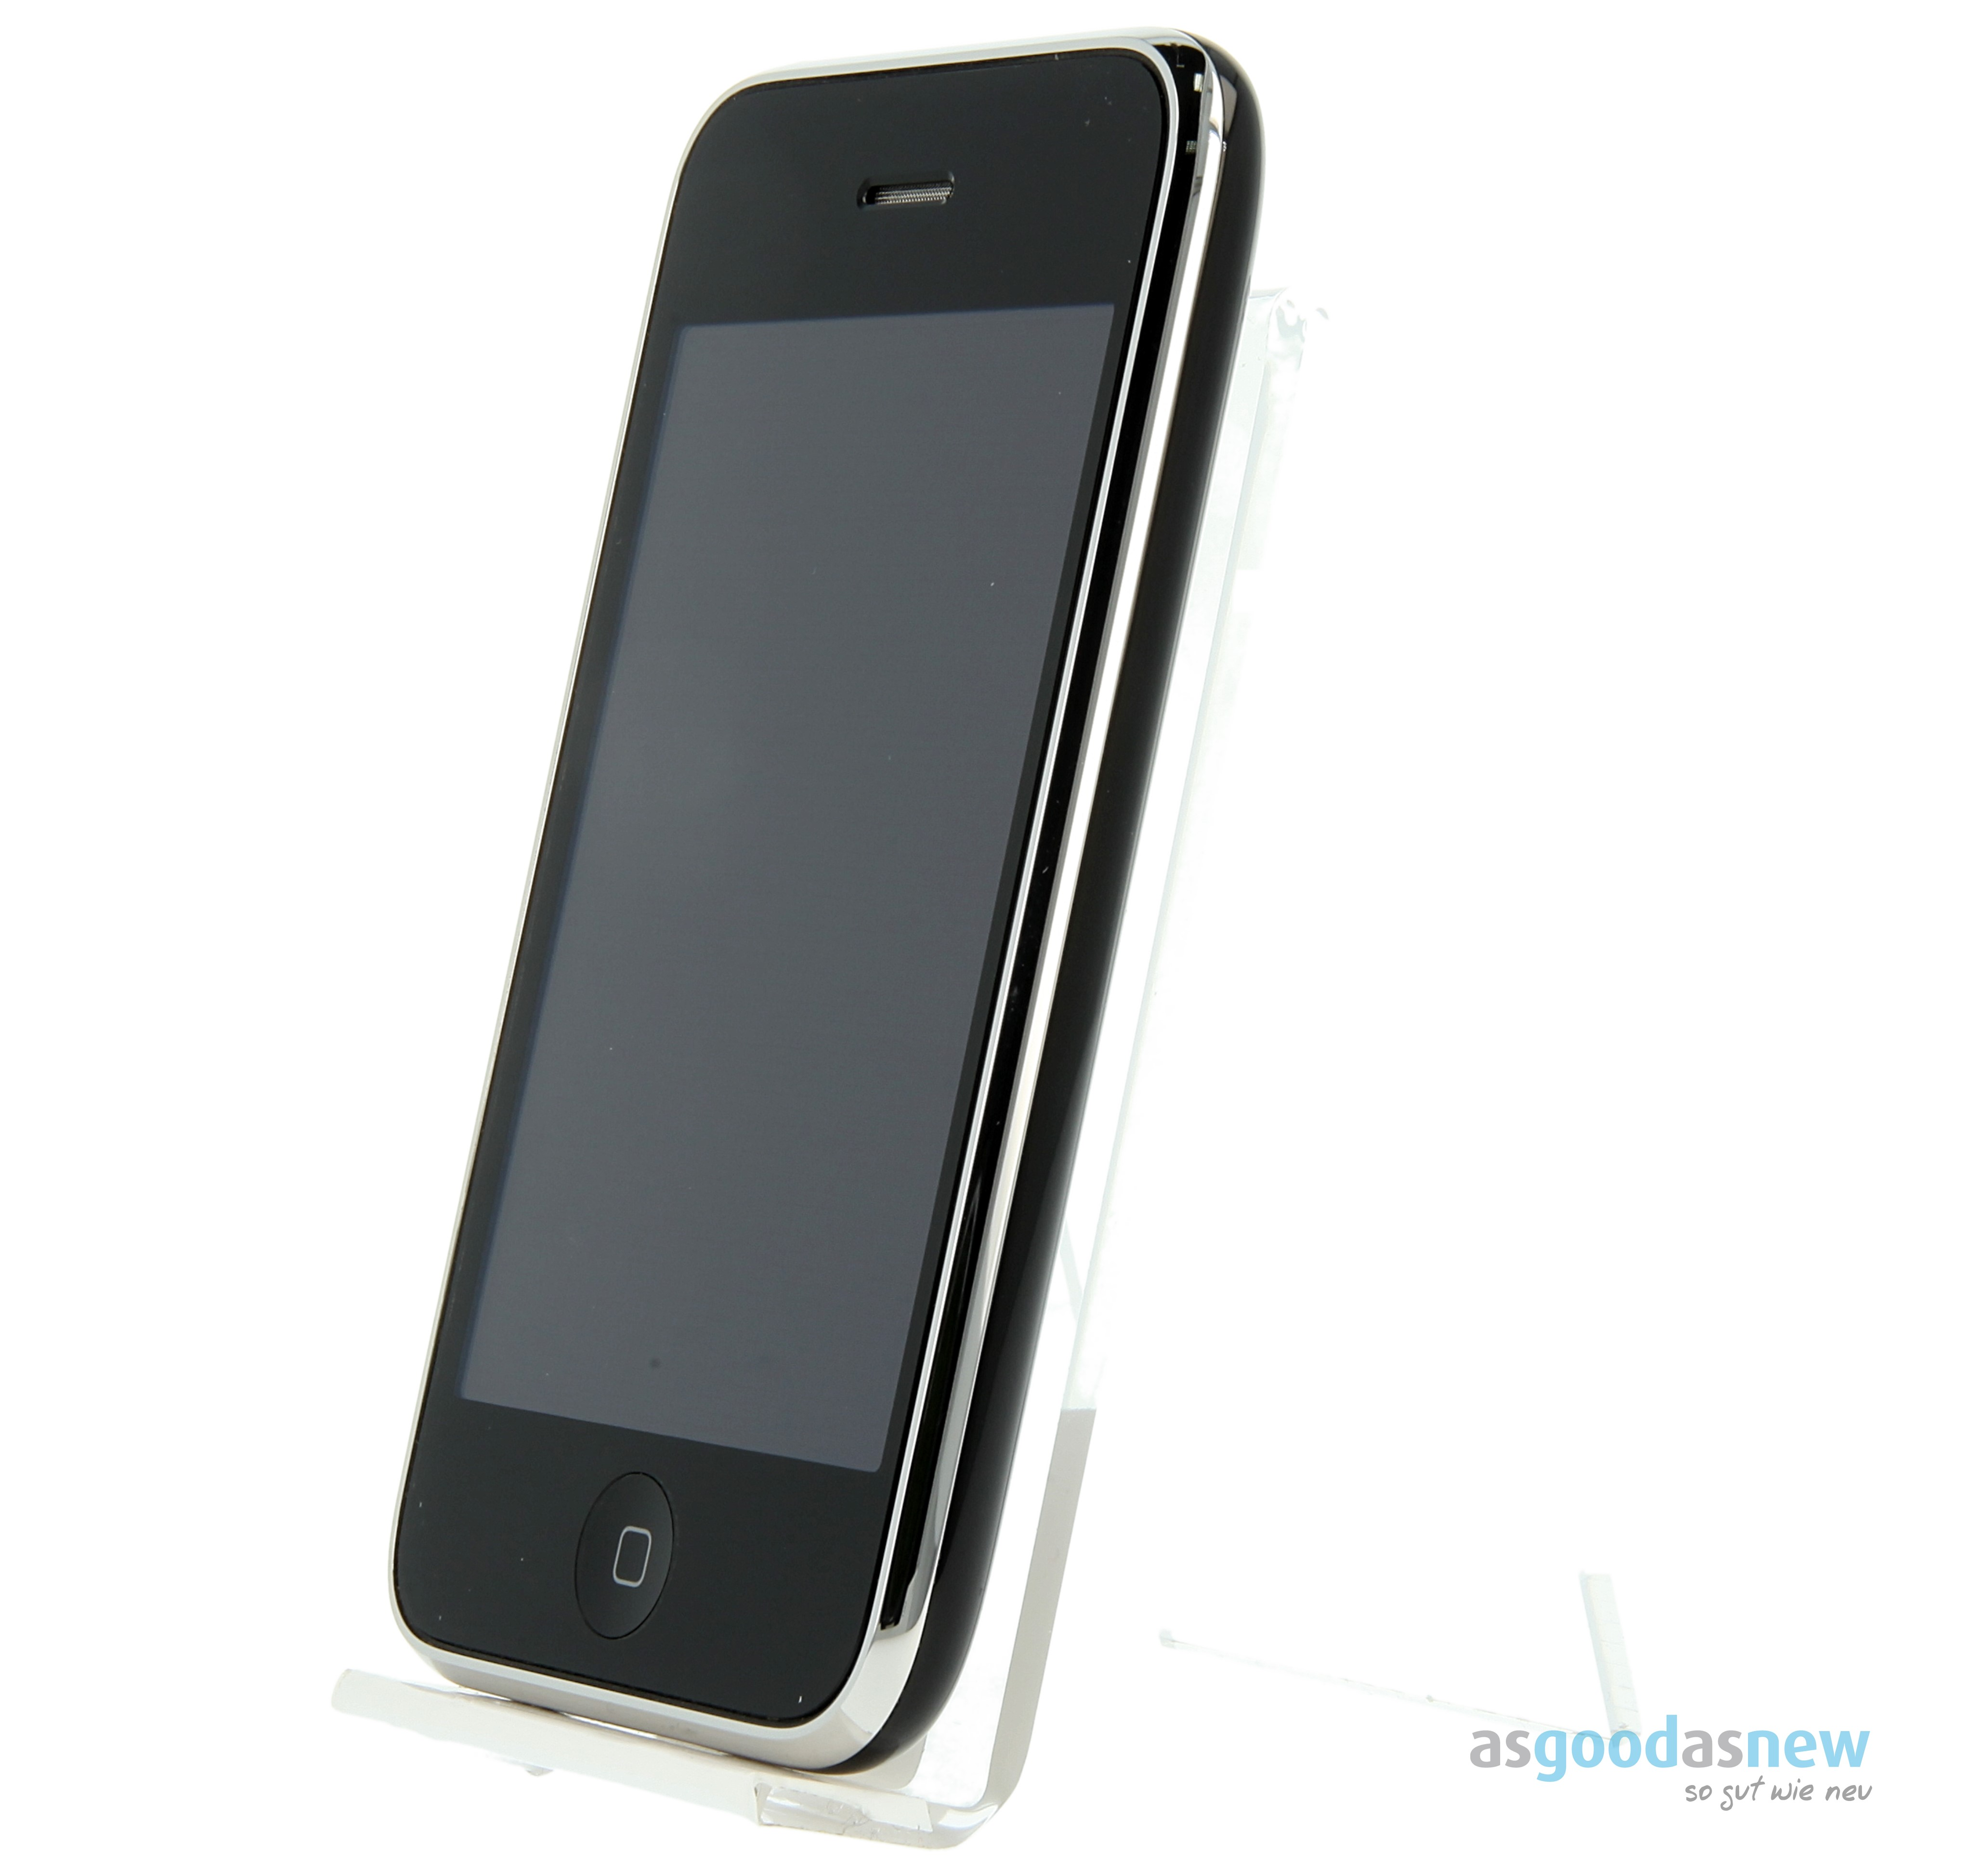 apple iphone 3g 16 gb schwarz ohne vertrag top. Black Bedroom Furniture Sets. Home Design Ideas